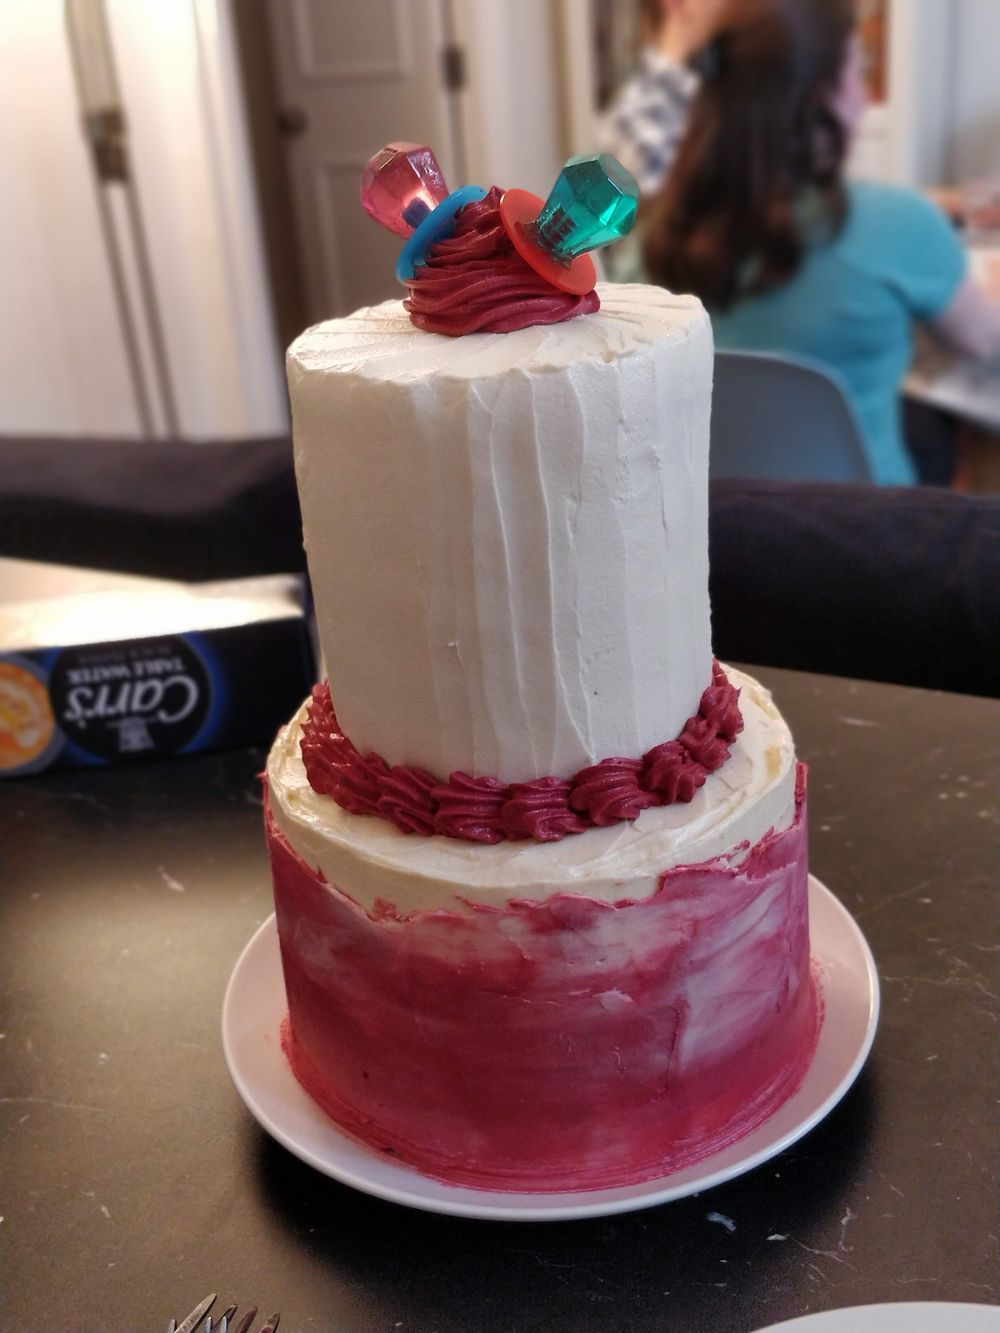 Fun Engagement Cake - image 1 - student project